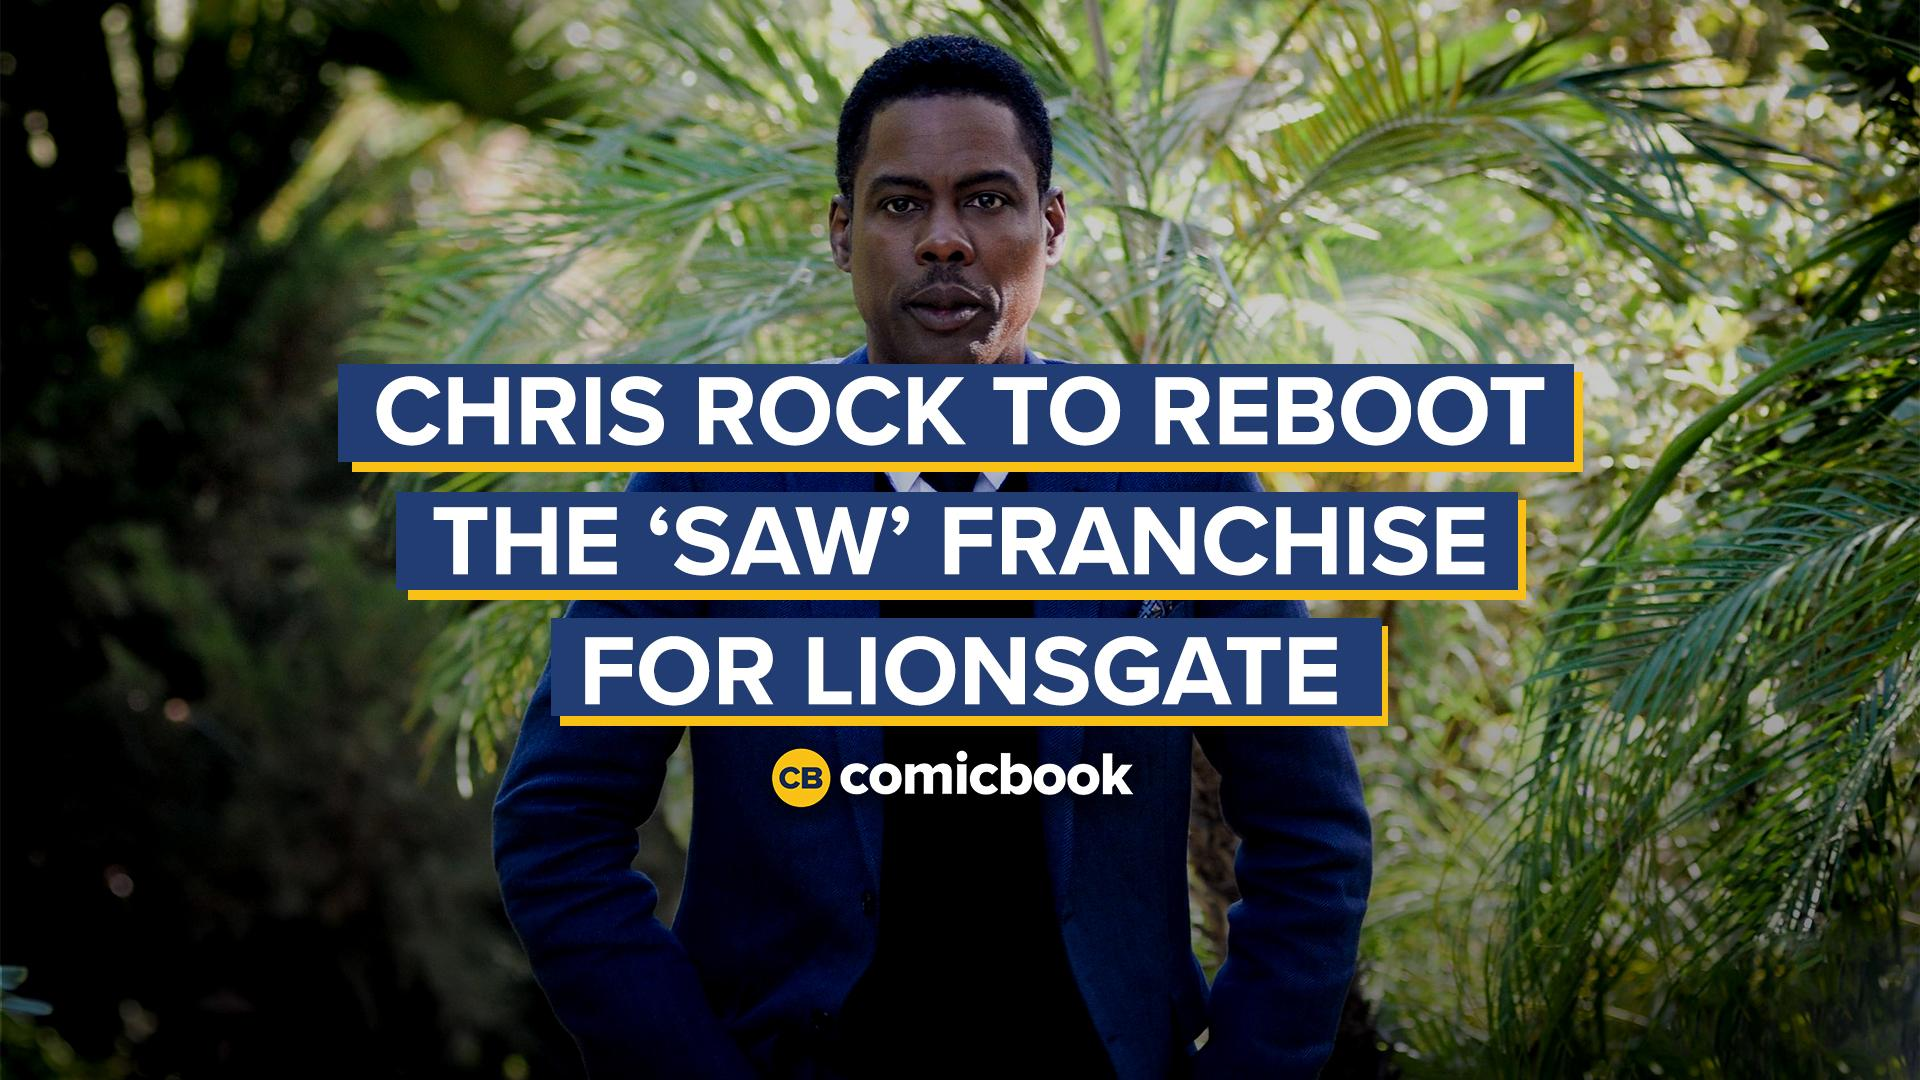 Chris Rock to Reboot the Saw Franchise for Lionsgate screen capture